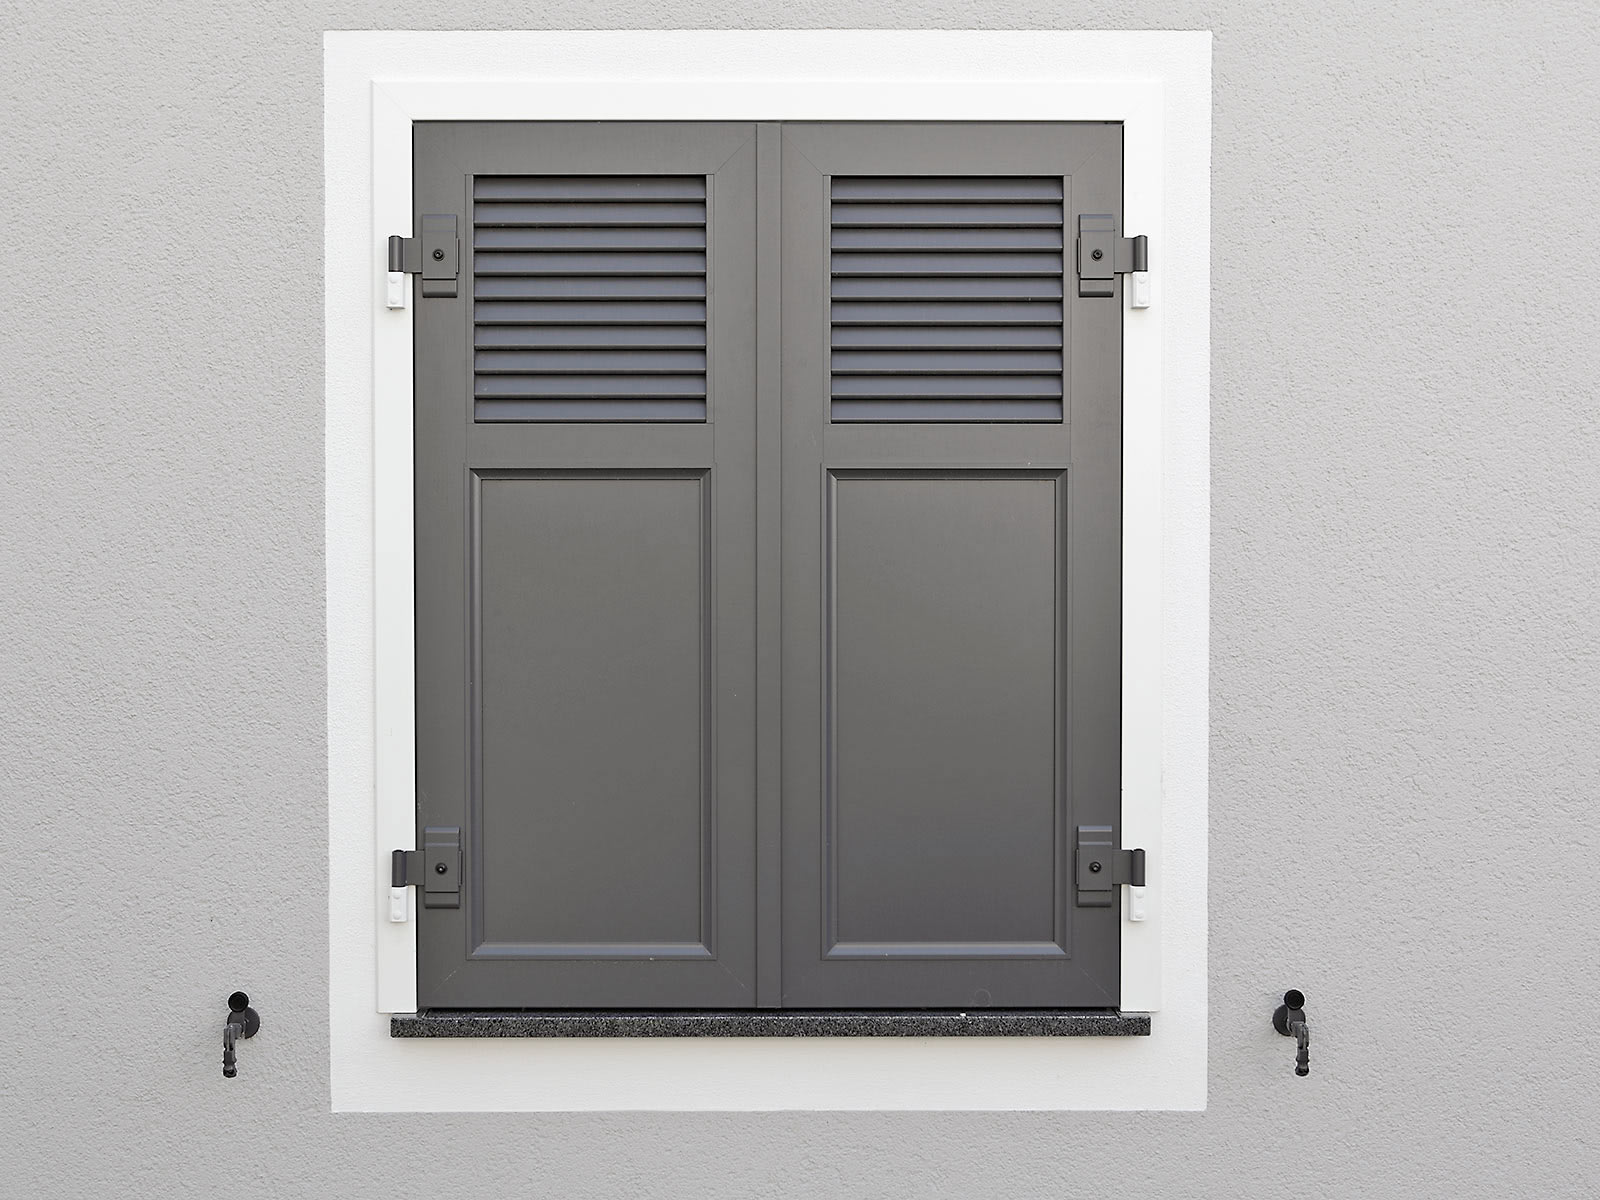 Installation systems window shutters - EHRET